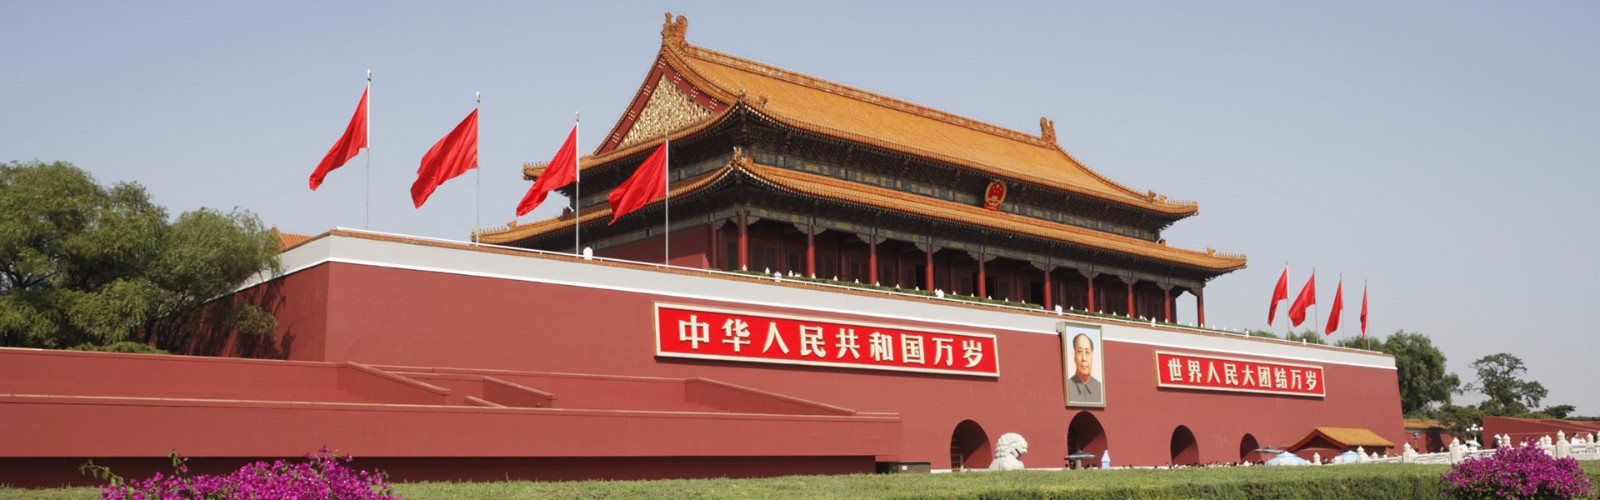 Tiananmen Square Holidays